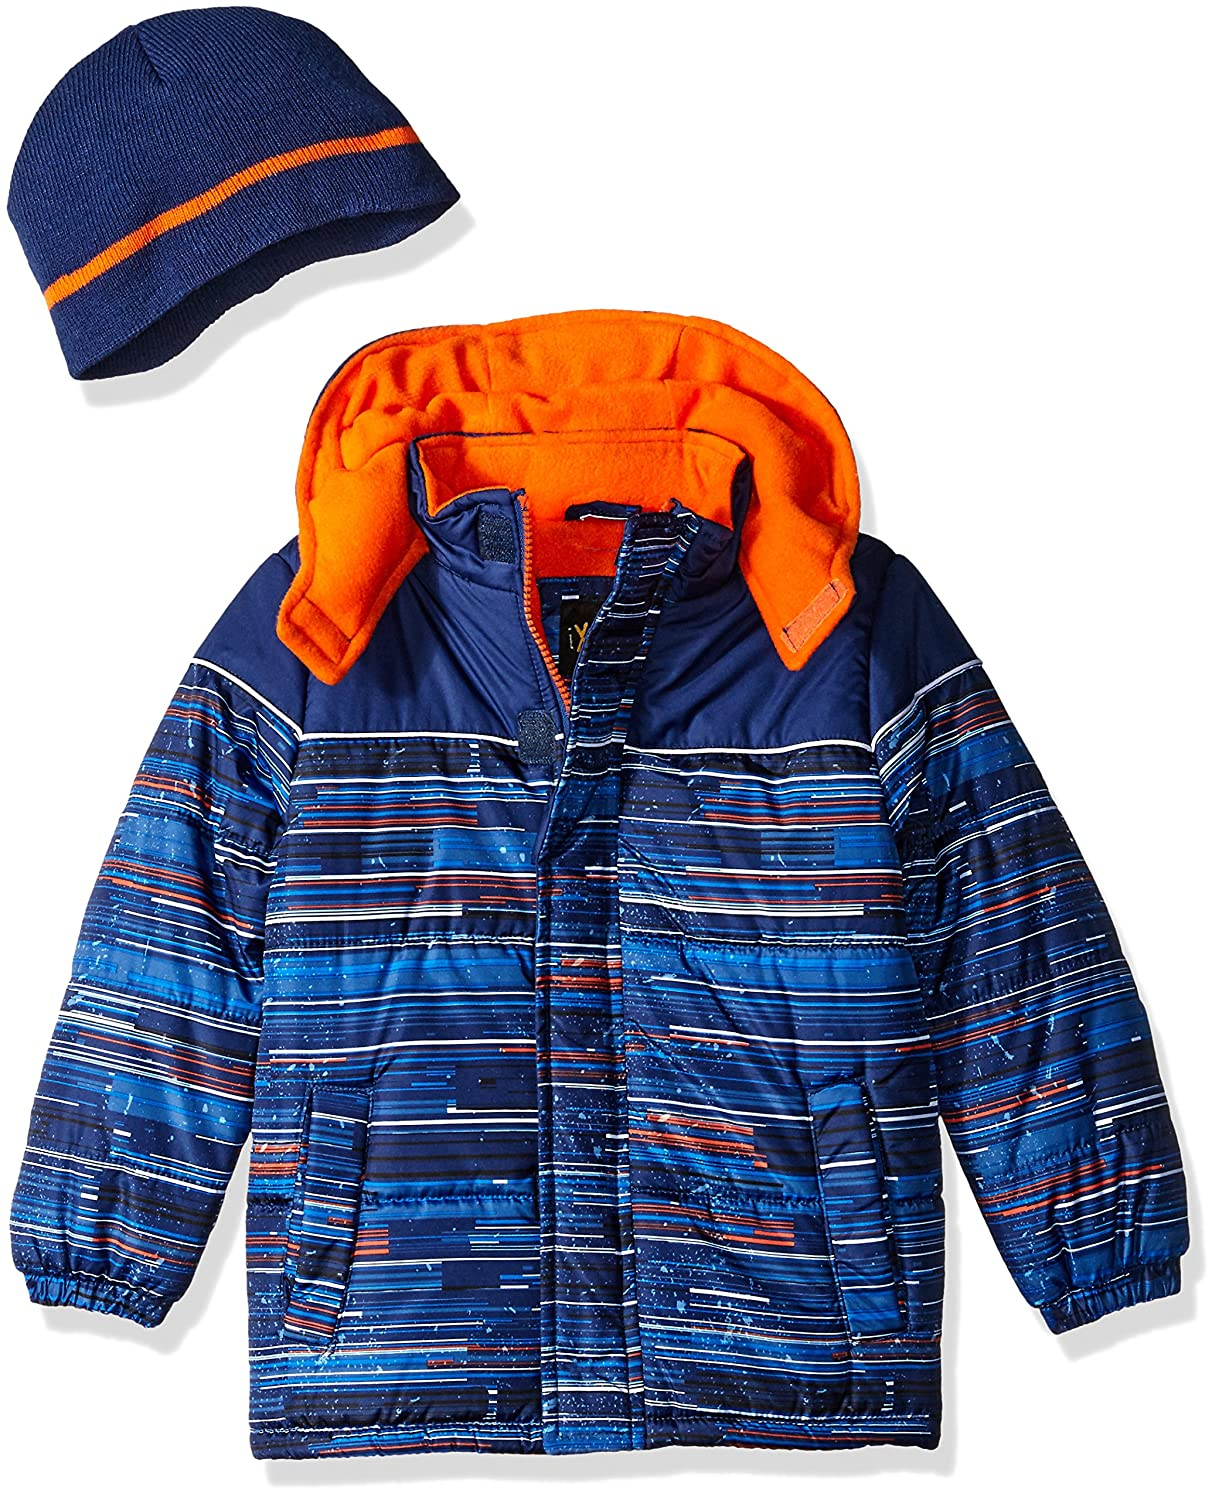 iXTREME boys Multi Square Print Gwp Puffer 74207